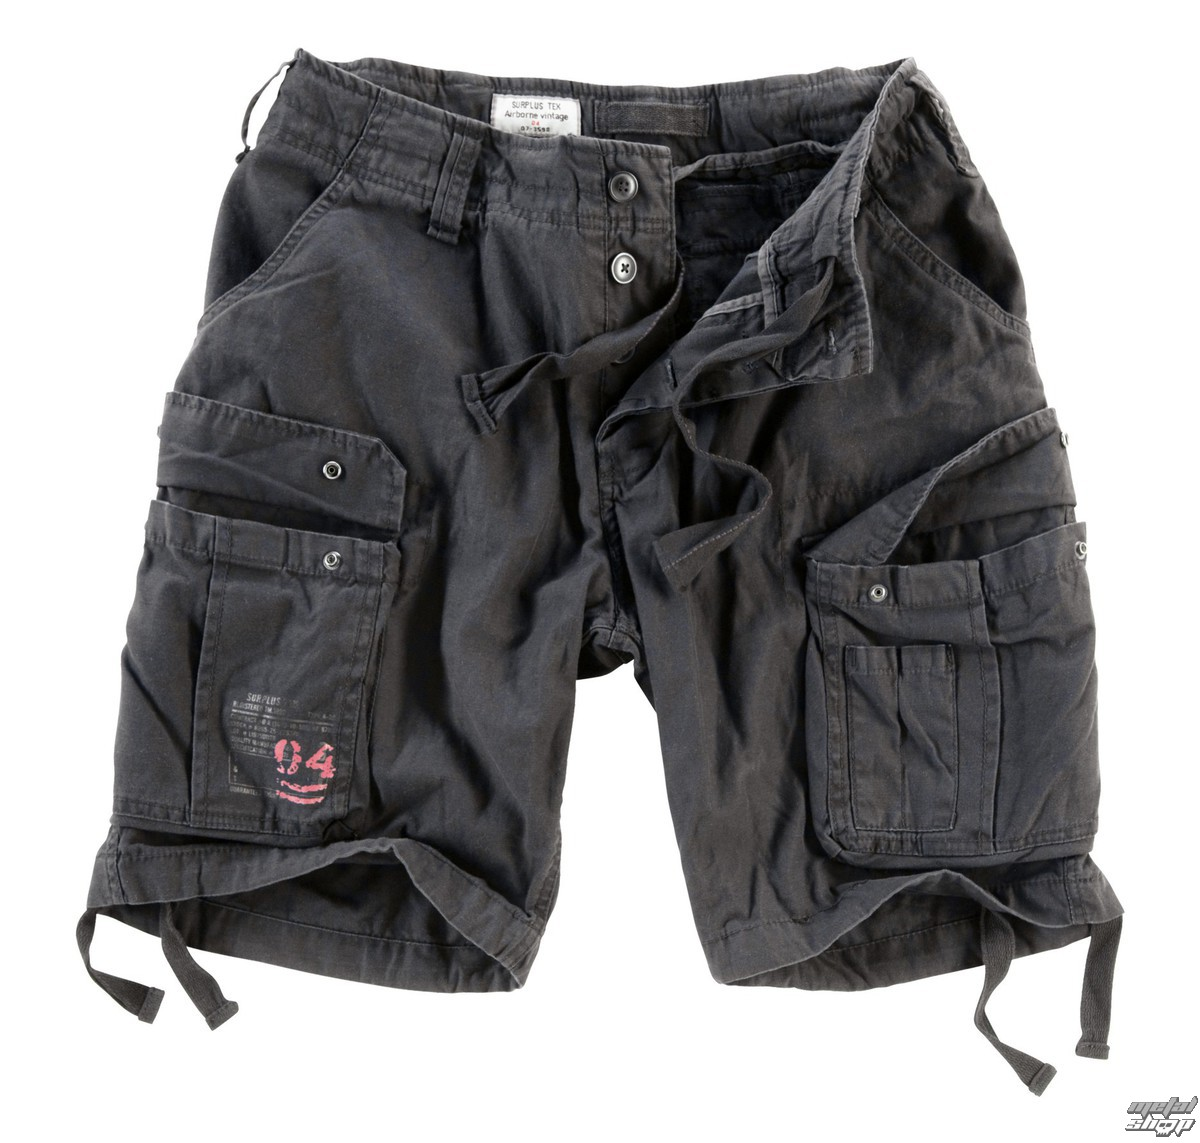 shorts men SURPLUS - Airborne Vintage - Black